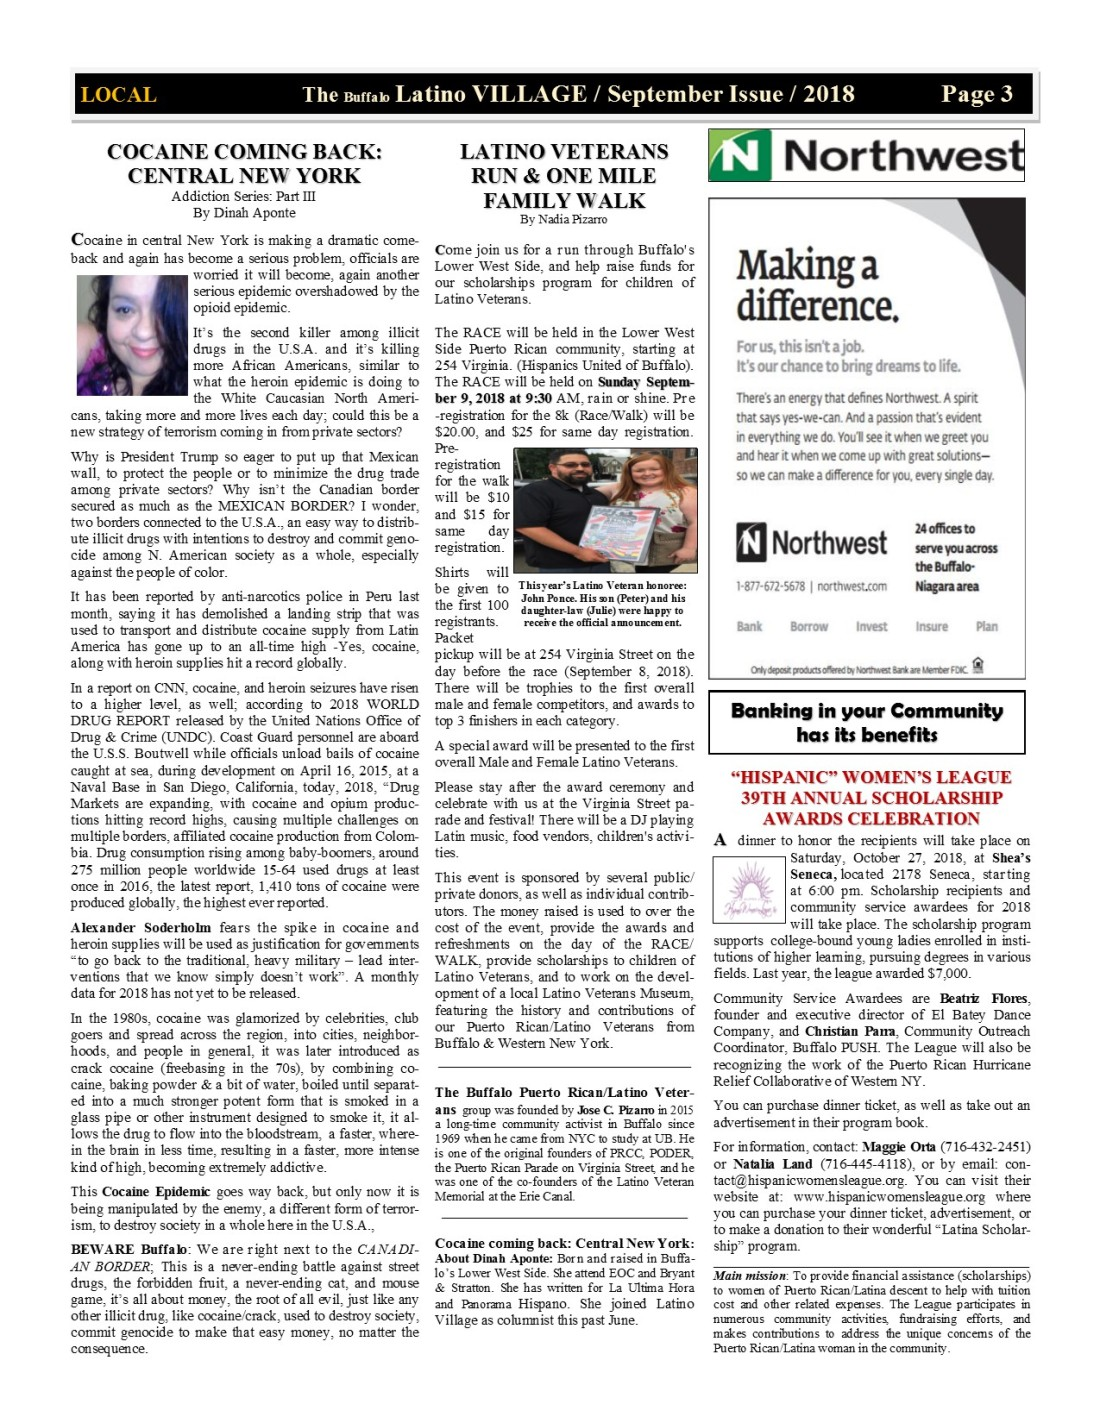 Page 3 Latino Village Newslette September Issue 2018 No. 11